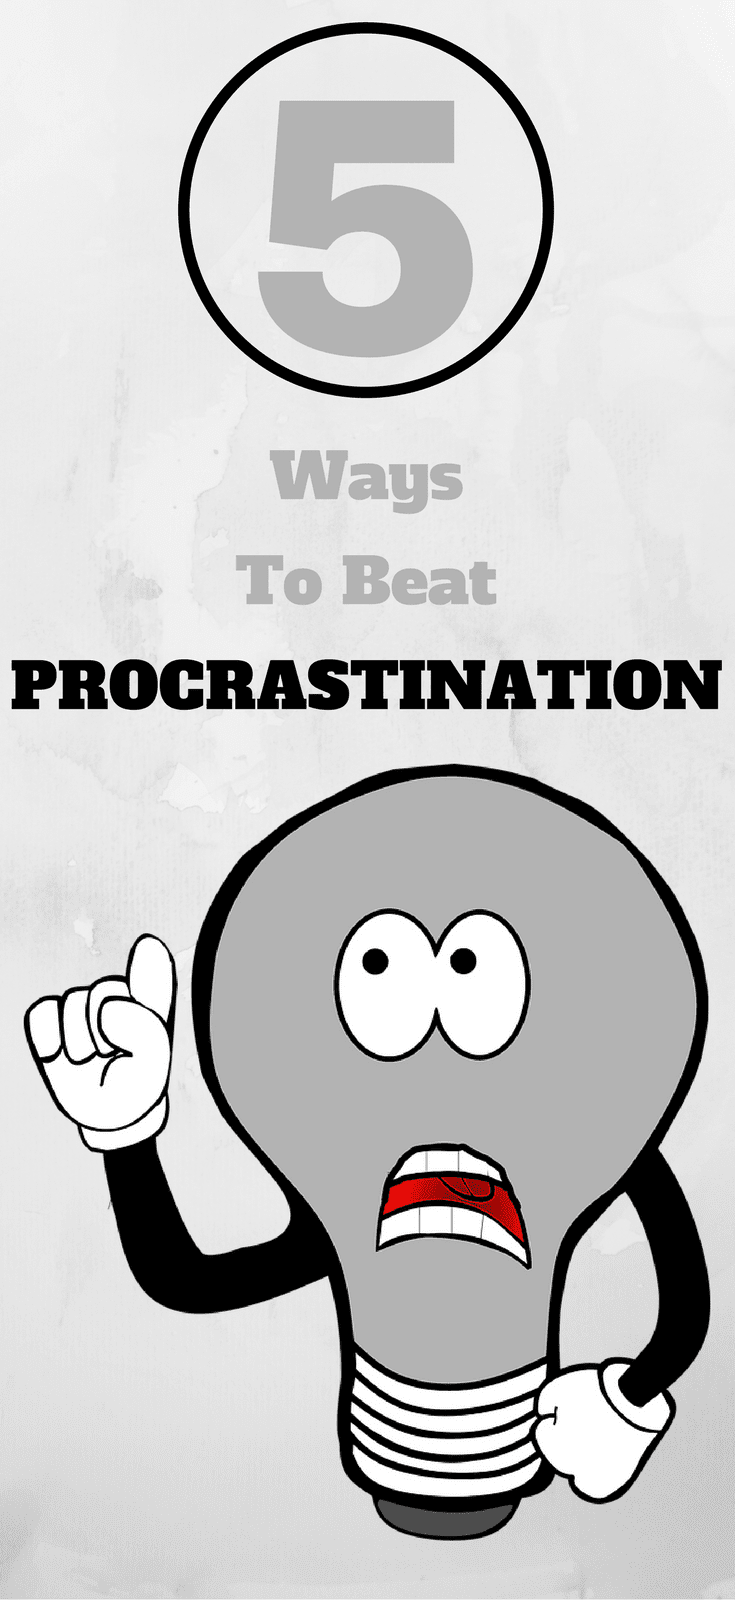 Five Ways To Beat Procrastination